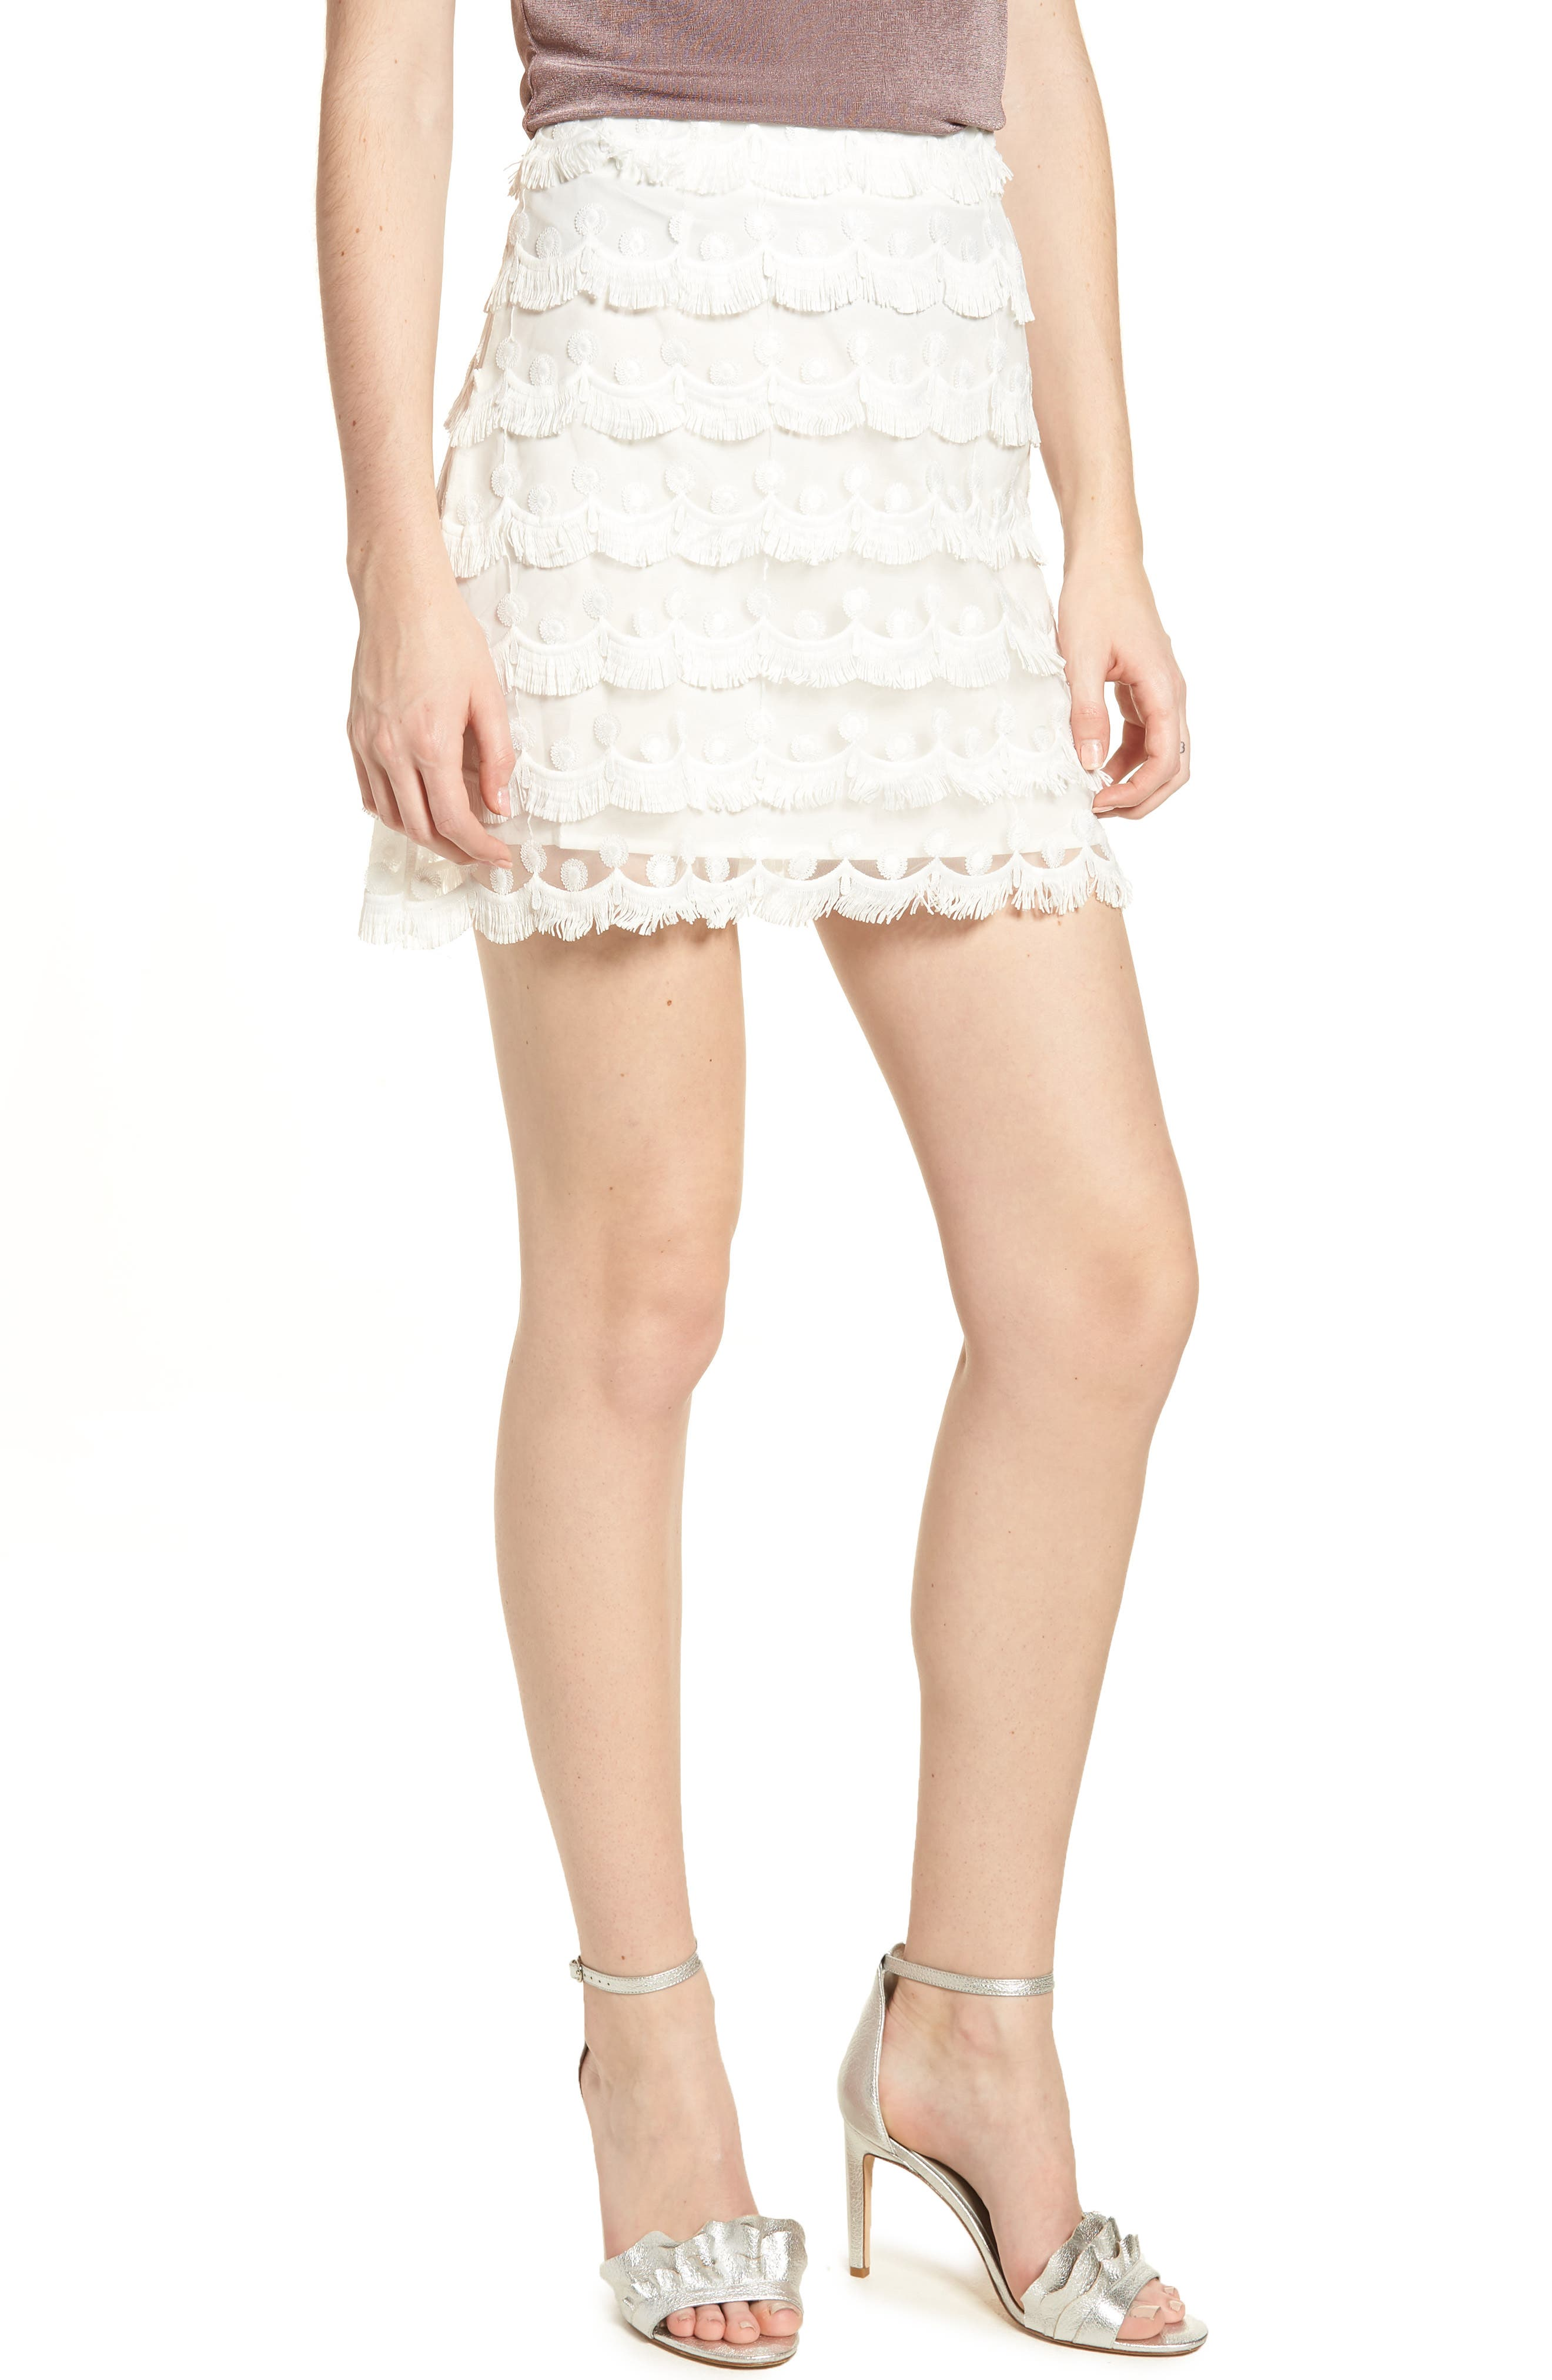 3D Lace Fringed Miniskirt,                             Main thumbnail 1, color,                             White